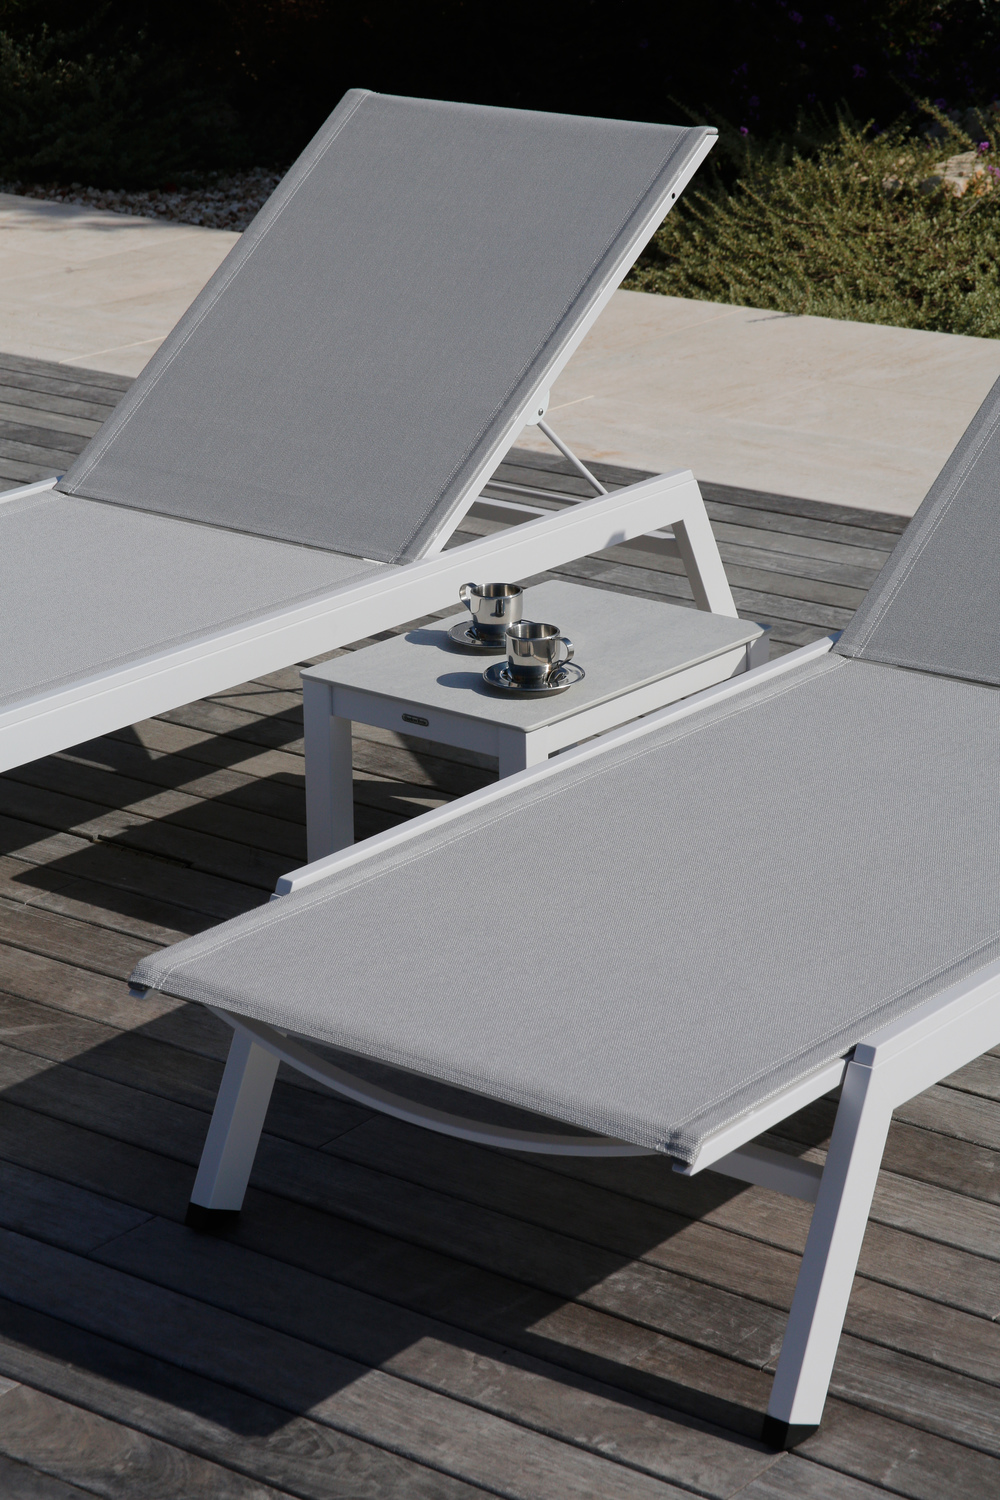 Barlow Tyrie - Equinox Painted Sun Lounger